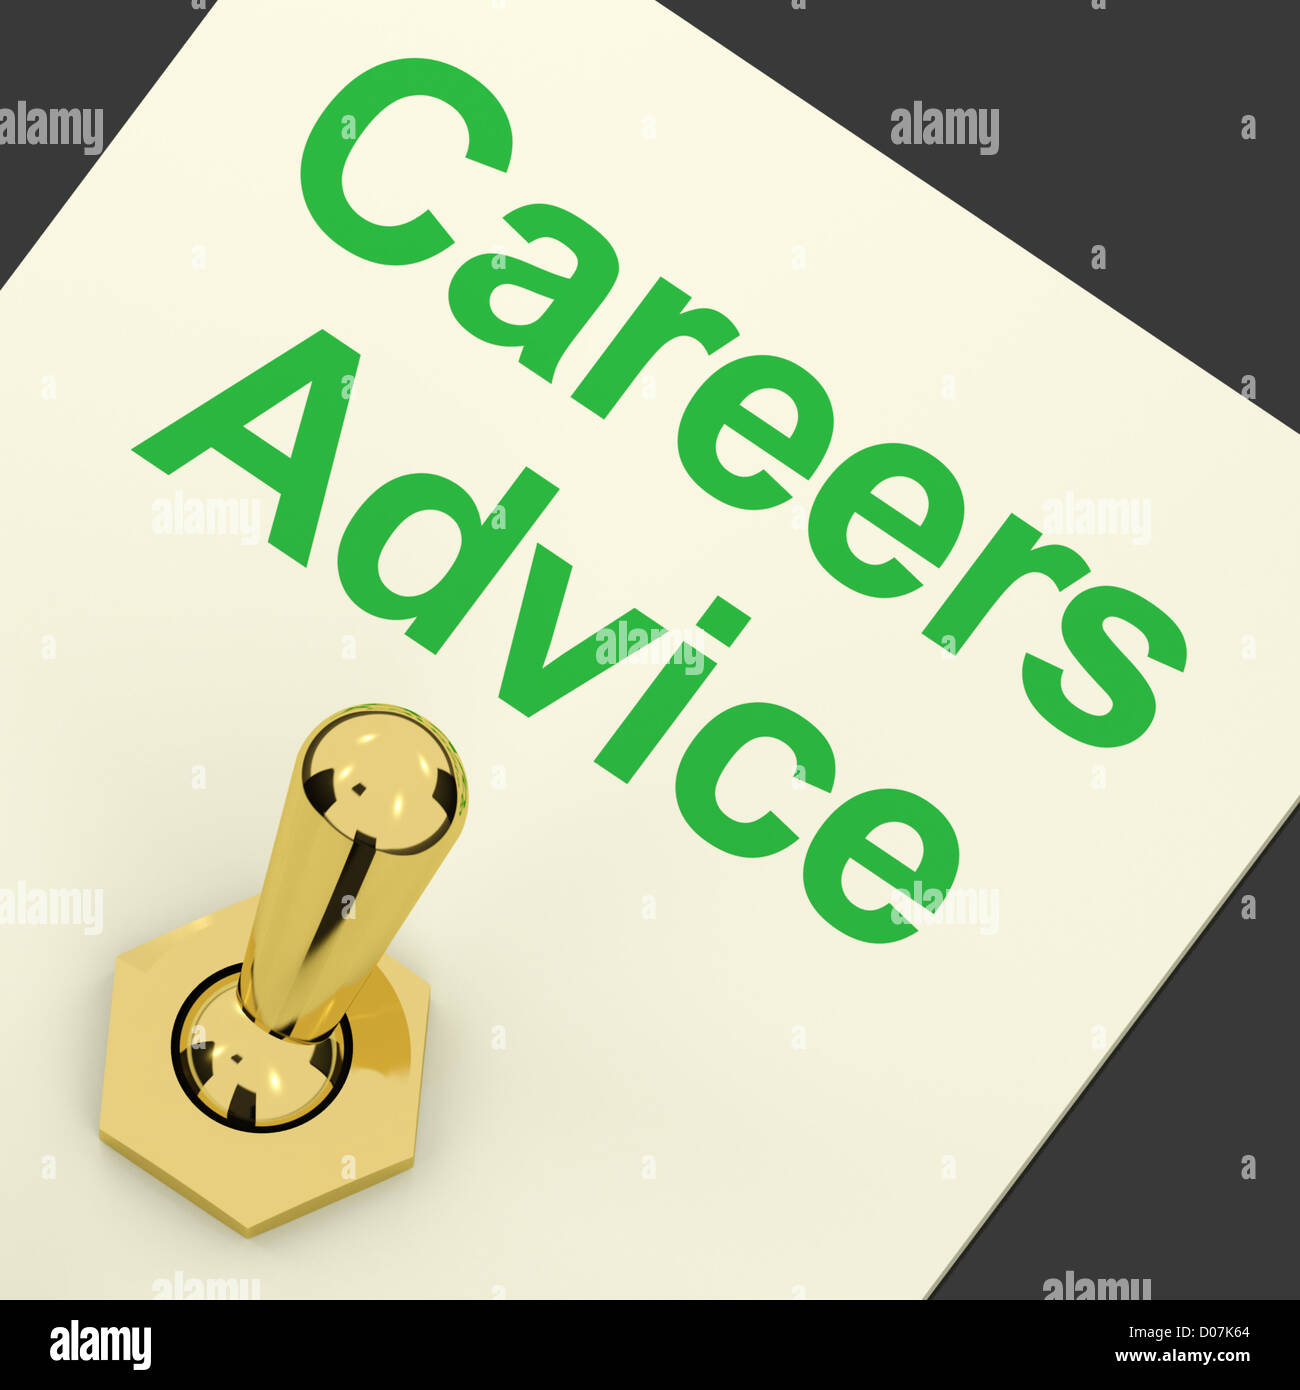 Careers Advice Switch On Shows Employment Guidance And Decisions - Stock Image